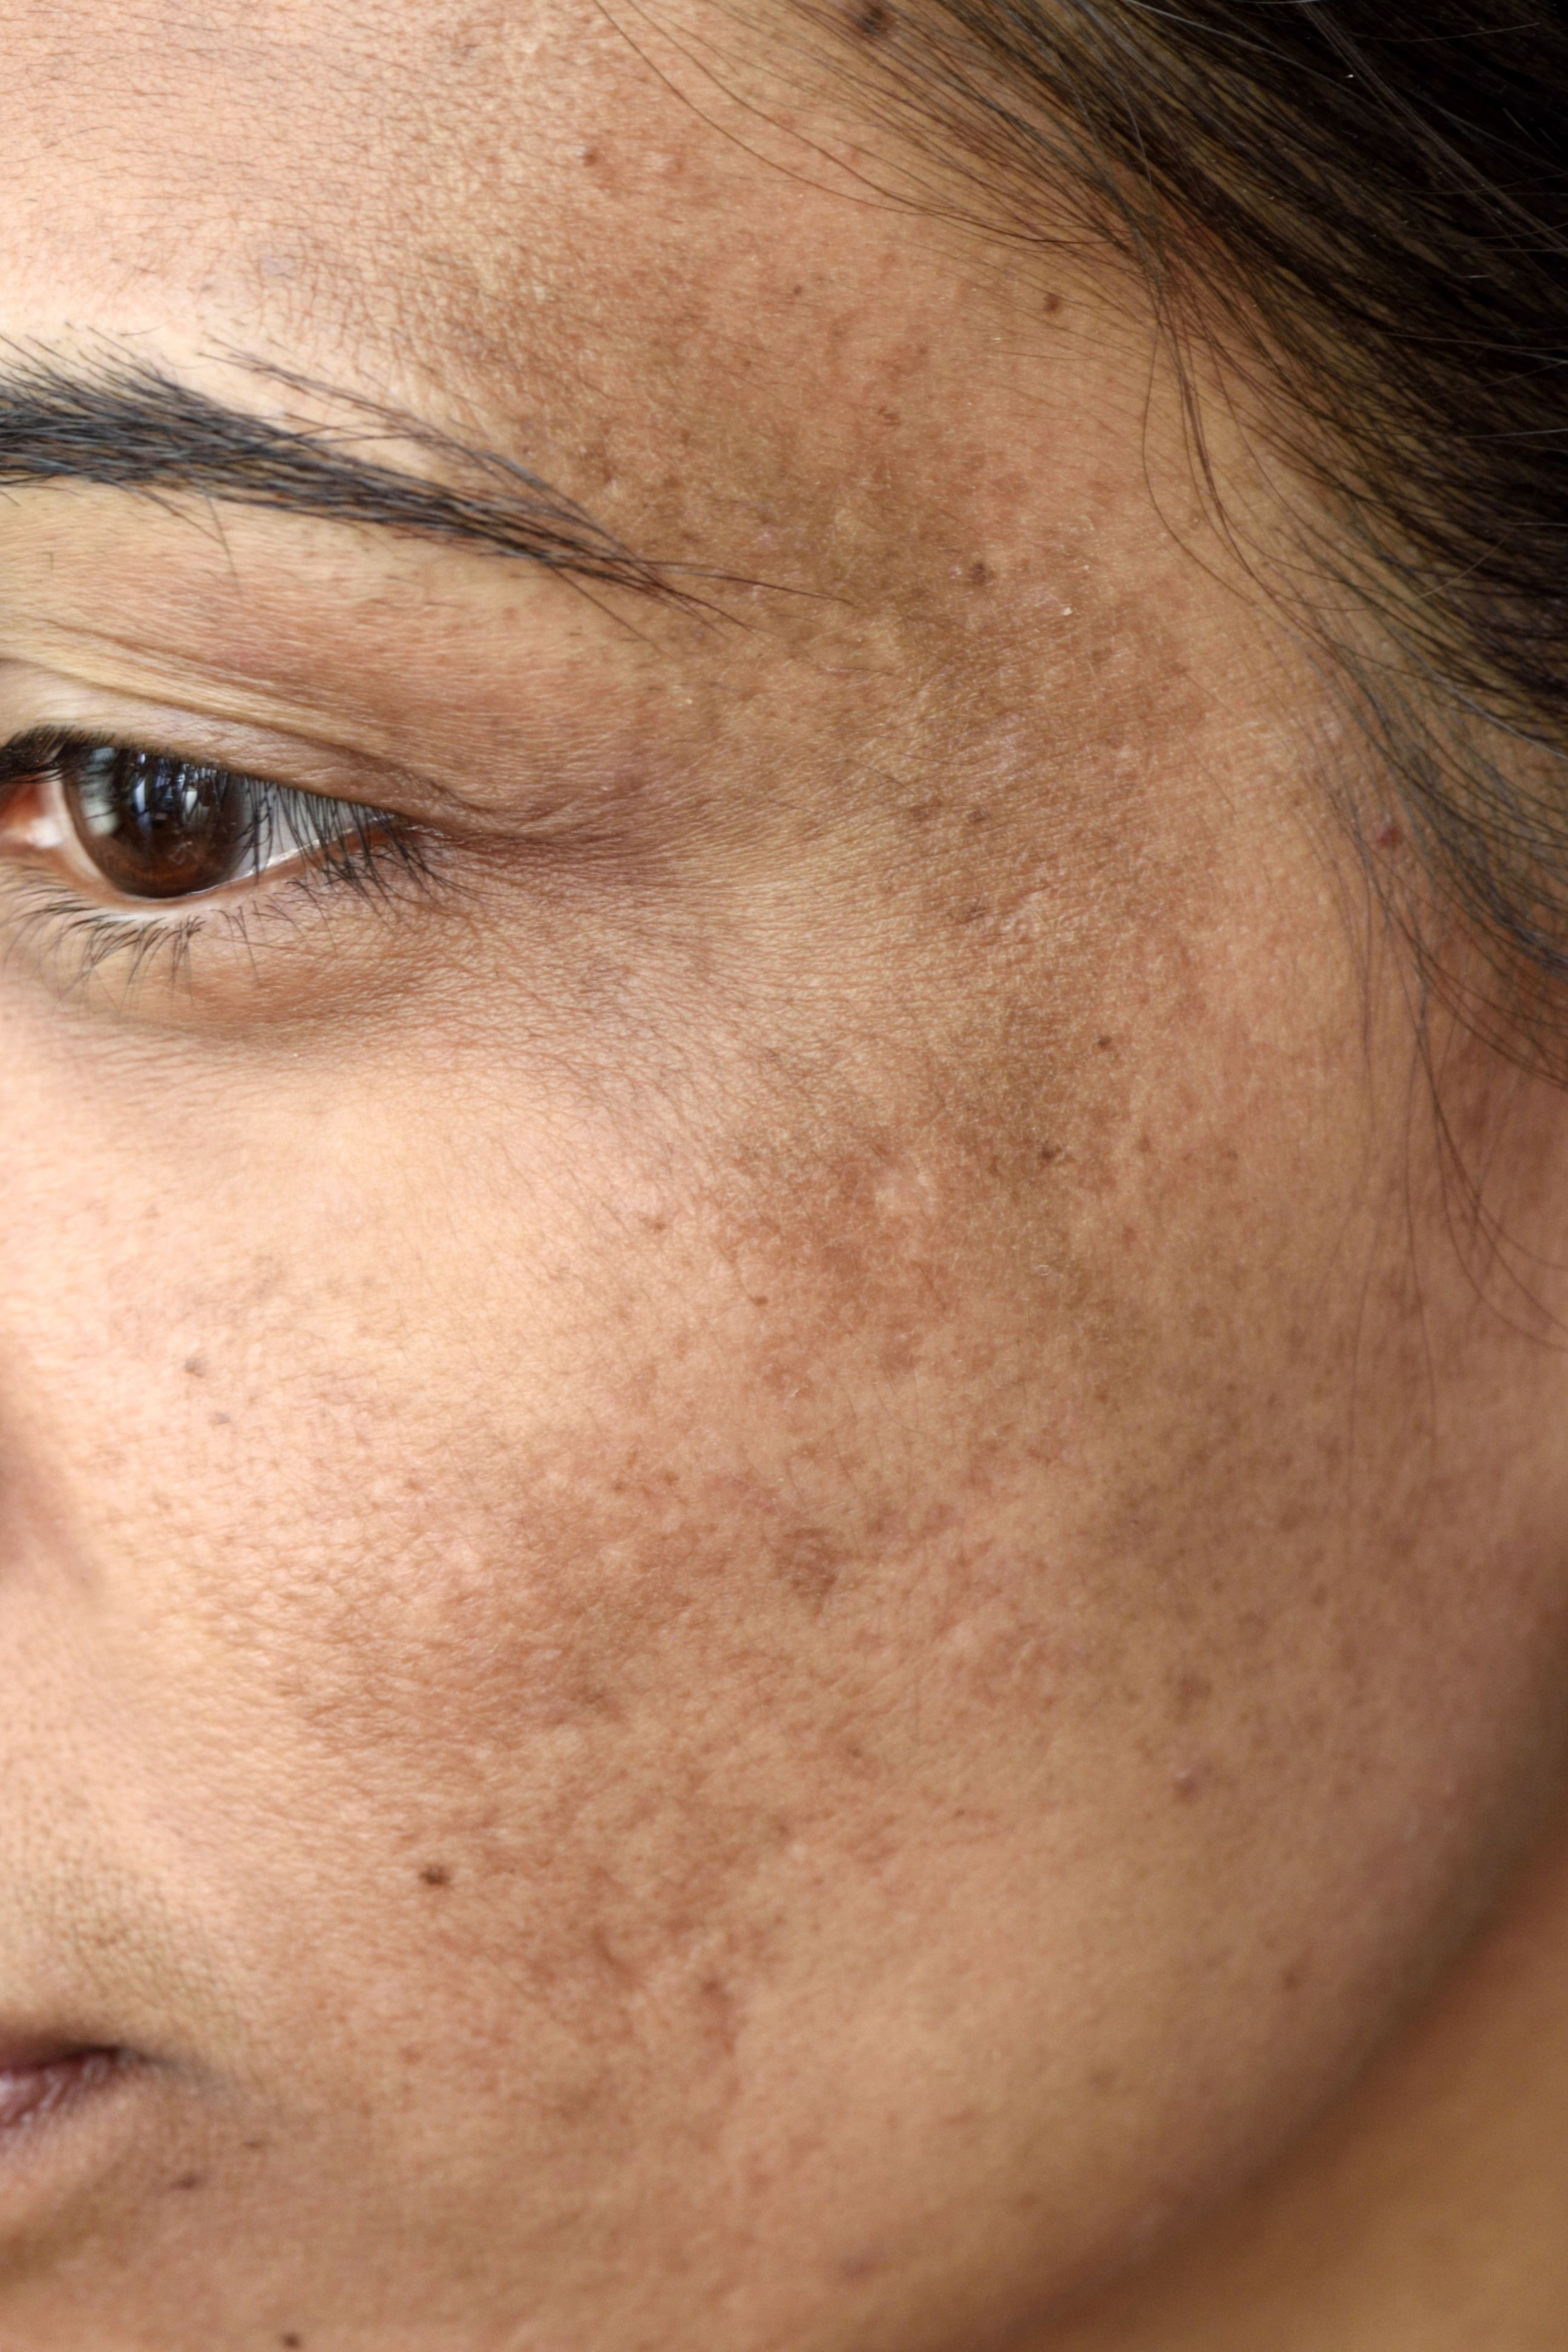 8 Common Skin Problems and How to Fix Them - Acne and